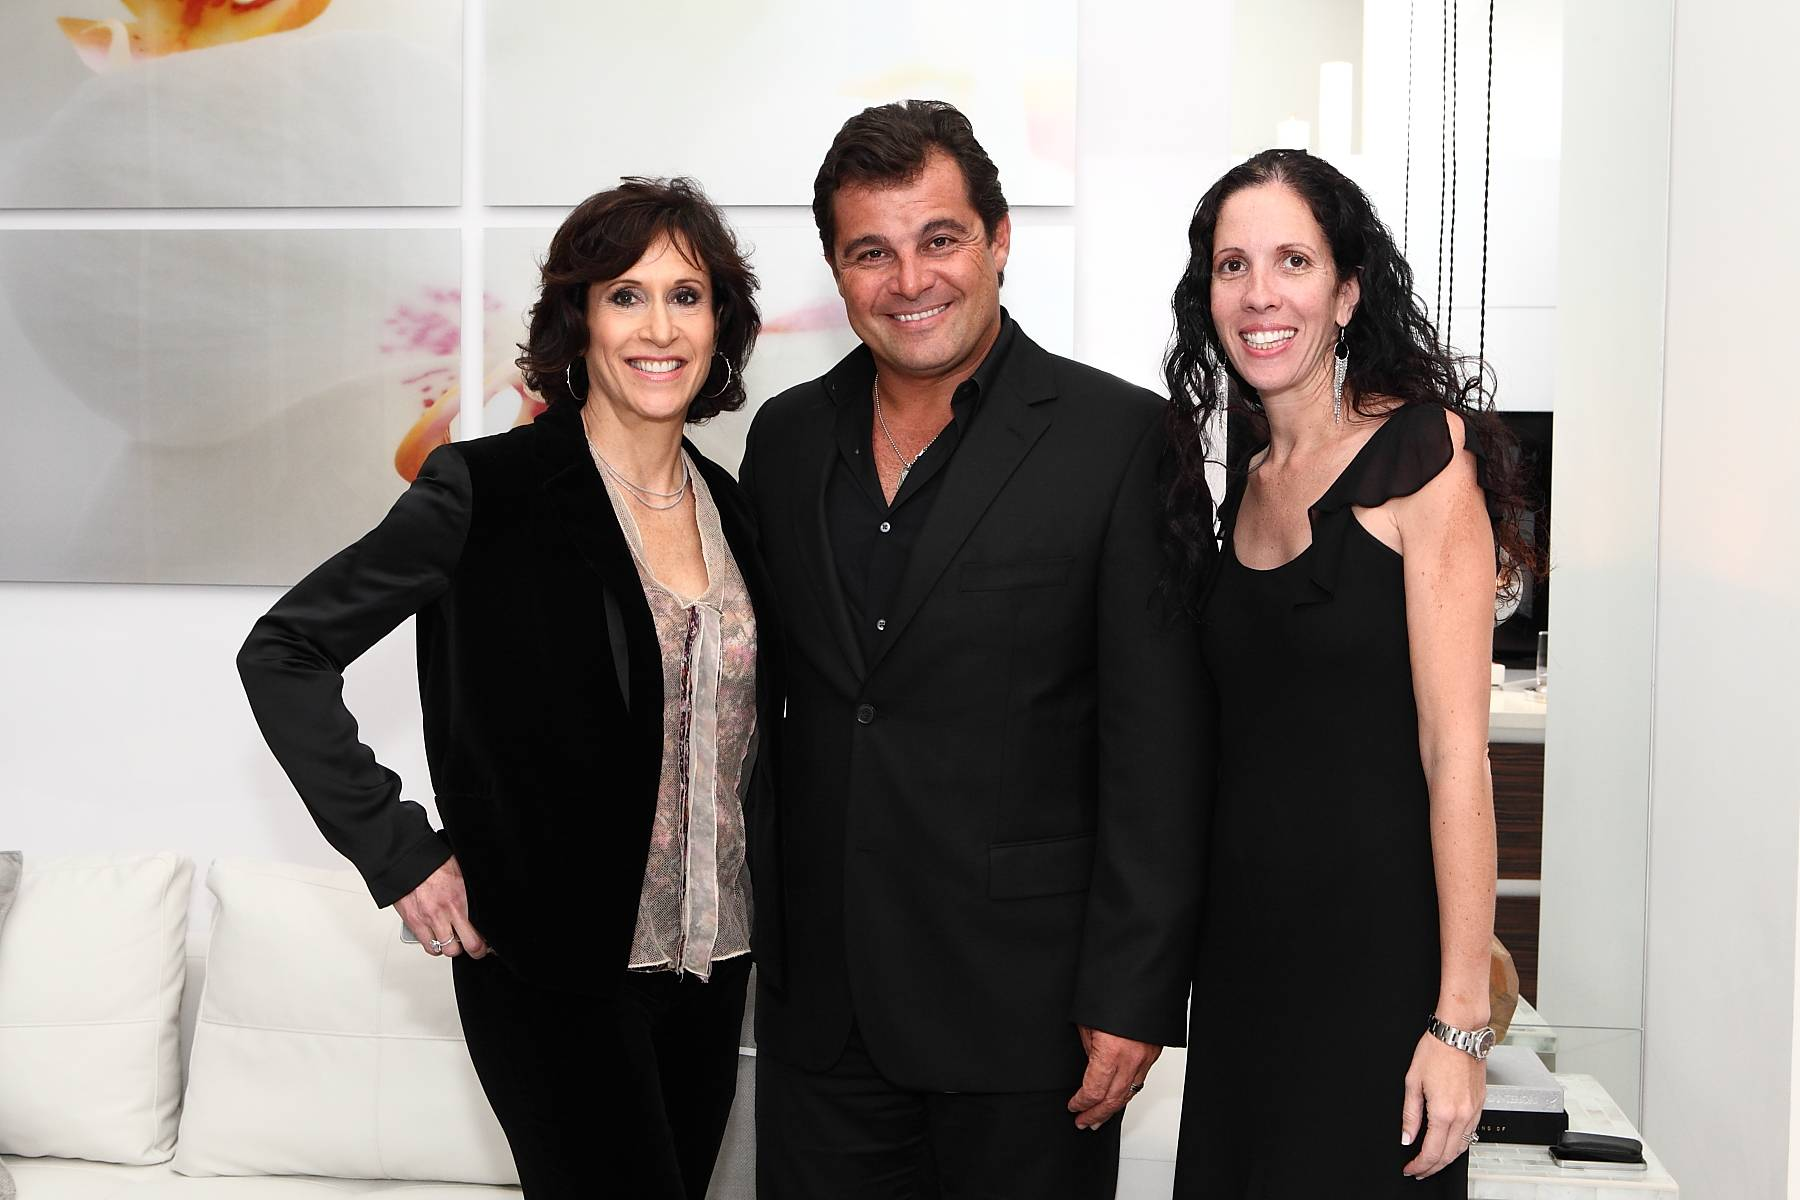 laurie ordover, paulo bacci and wendy marks pine1